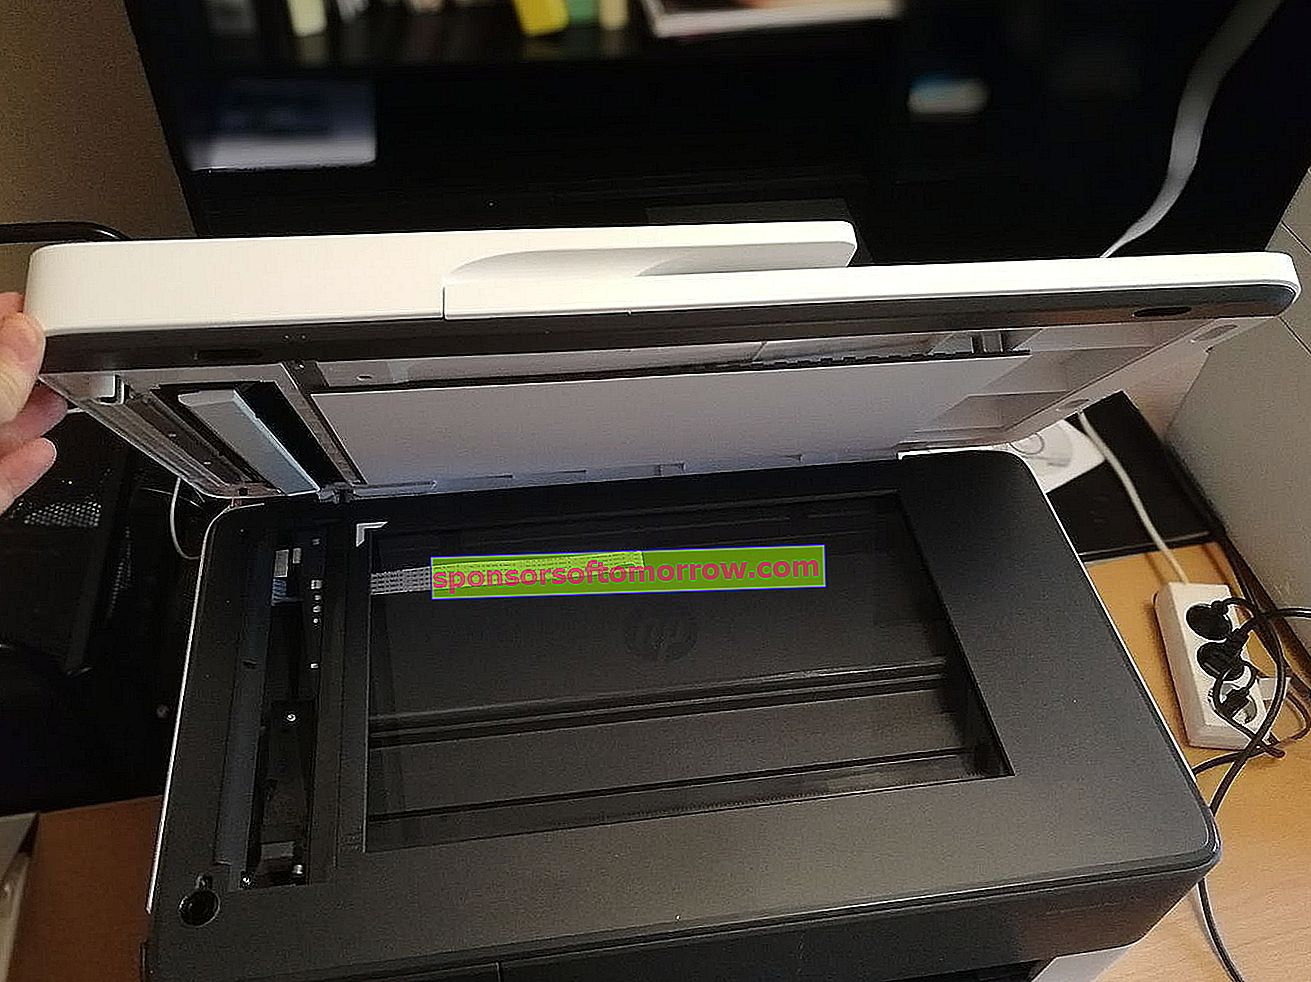 HP OfficeJet Pro 7720 scanner unit